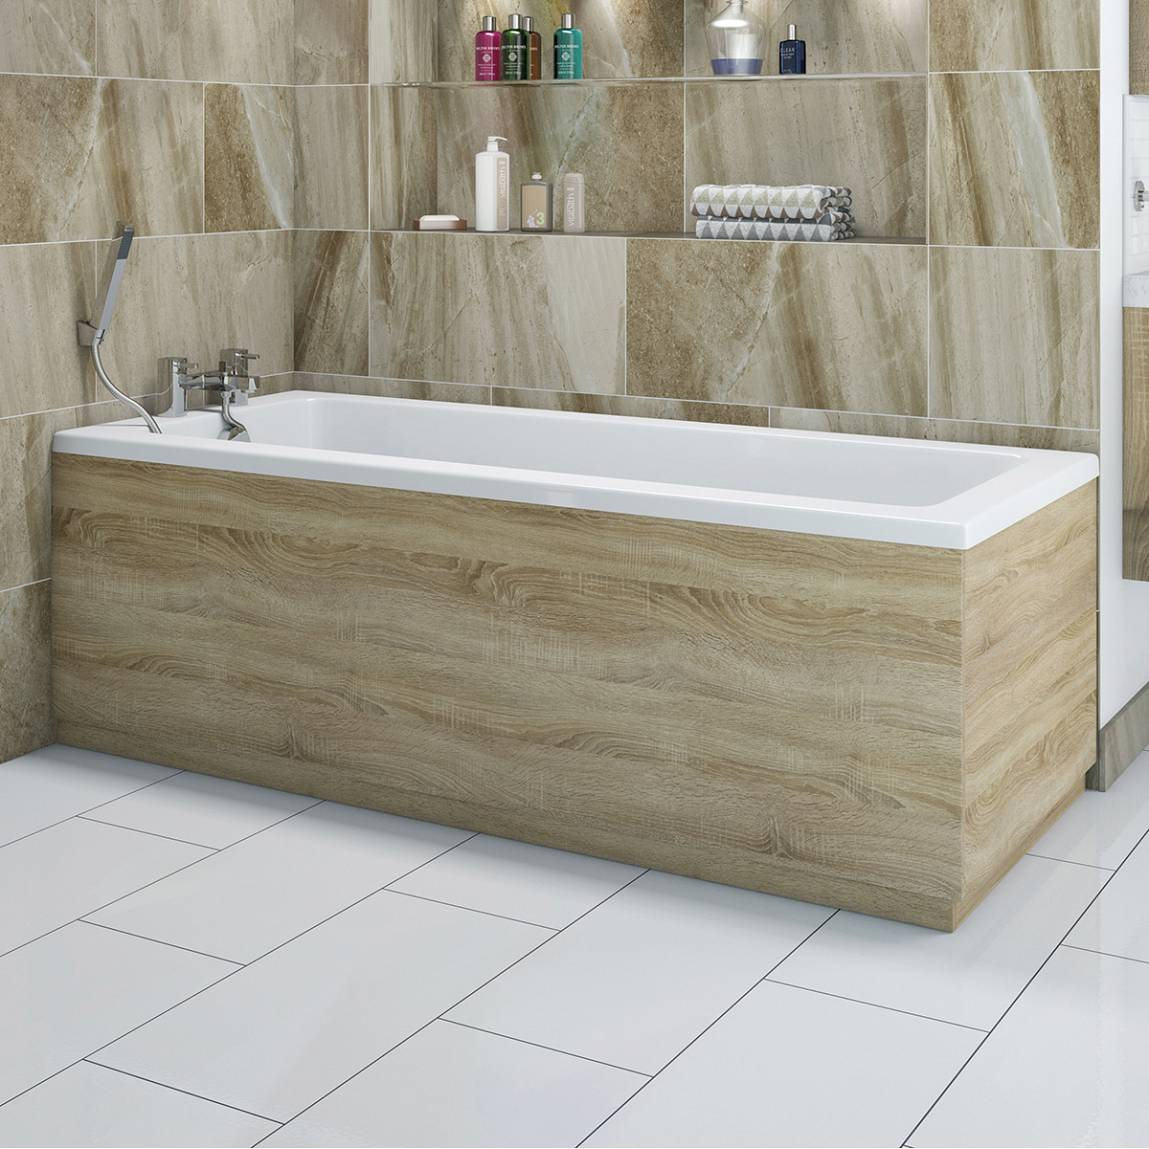 Drift oak wooden bath side panel 1700